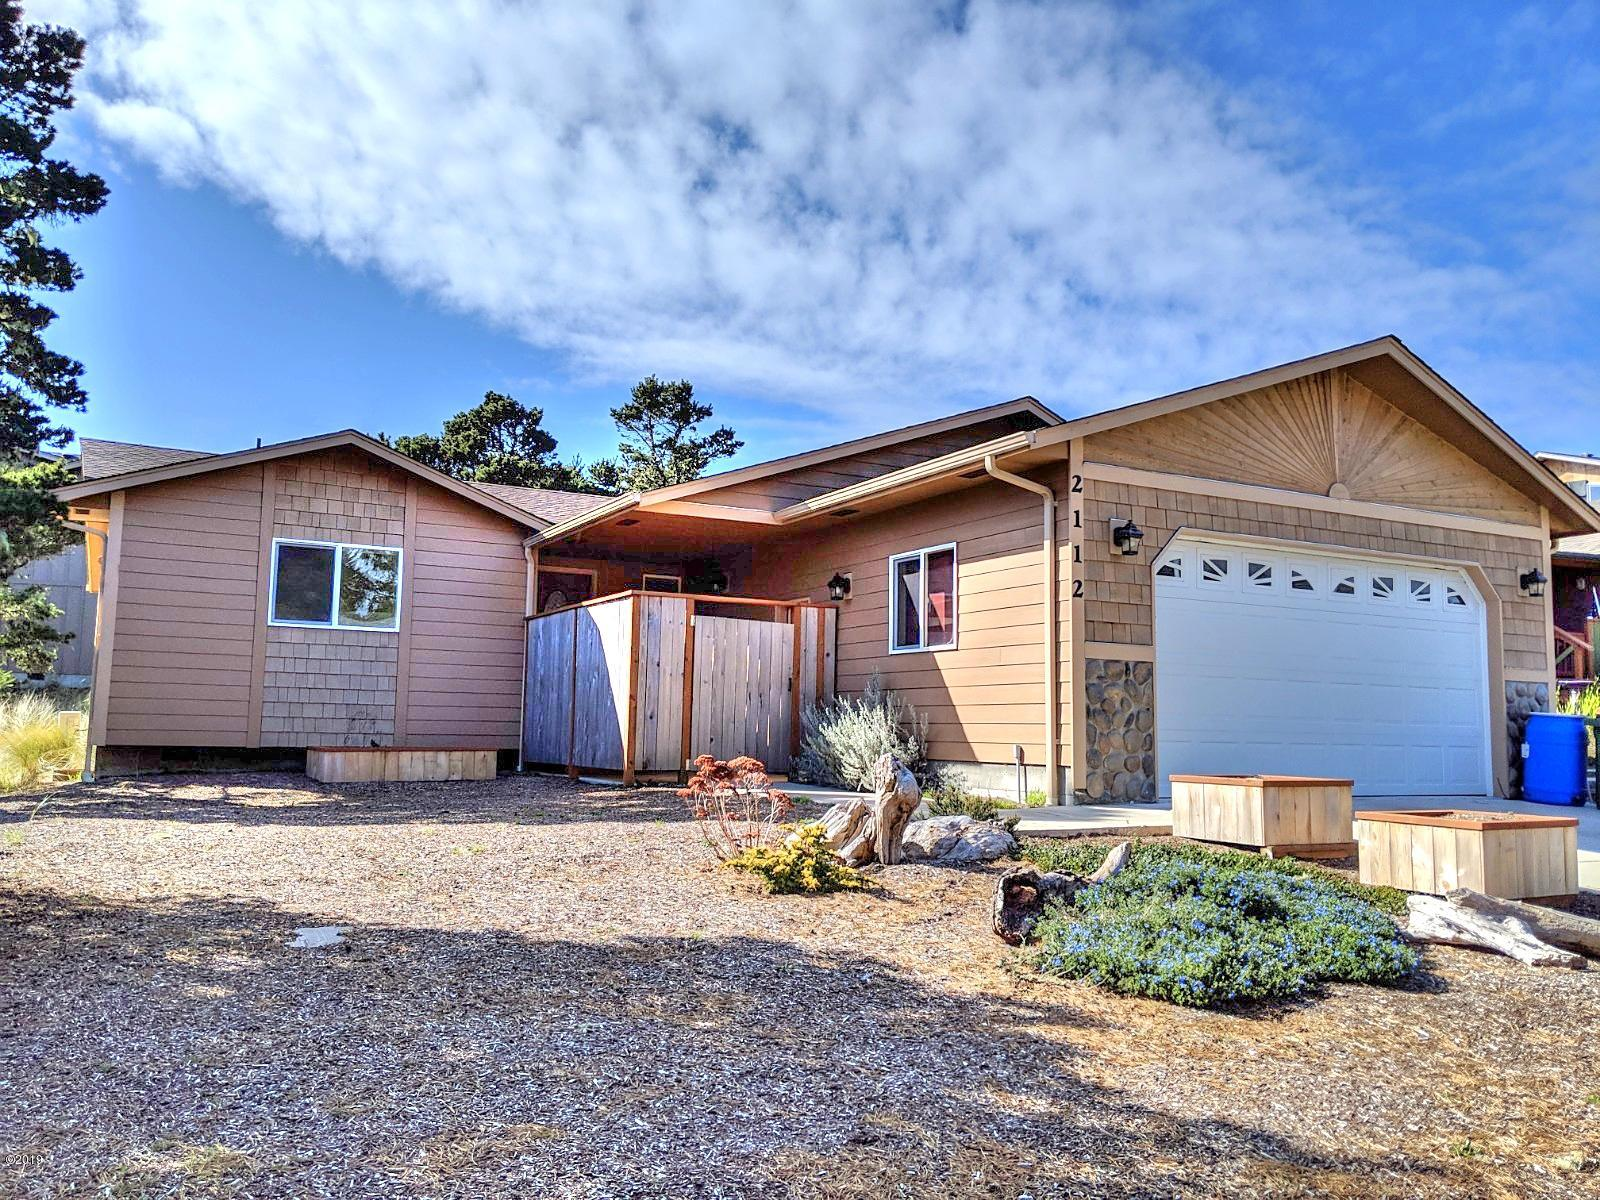 2112 NW Mokmak Lake Dr, Waldport, OR 97394 - Front Of The Home